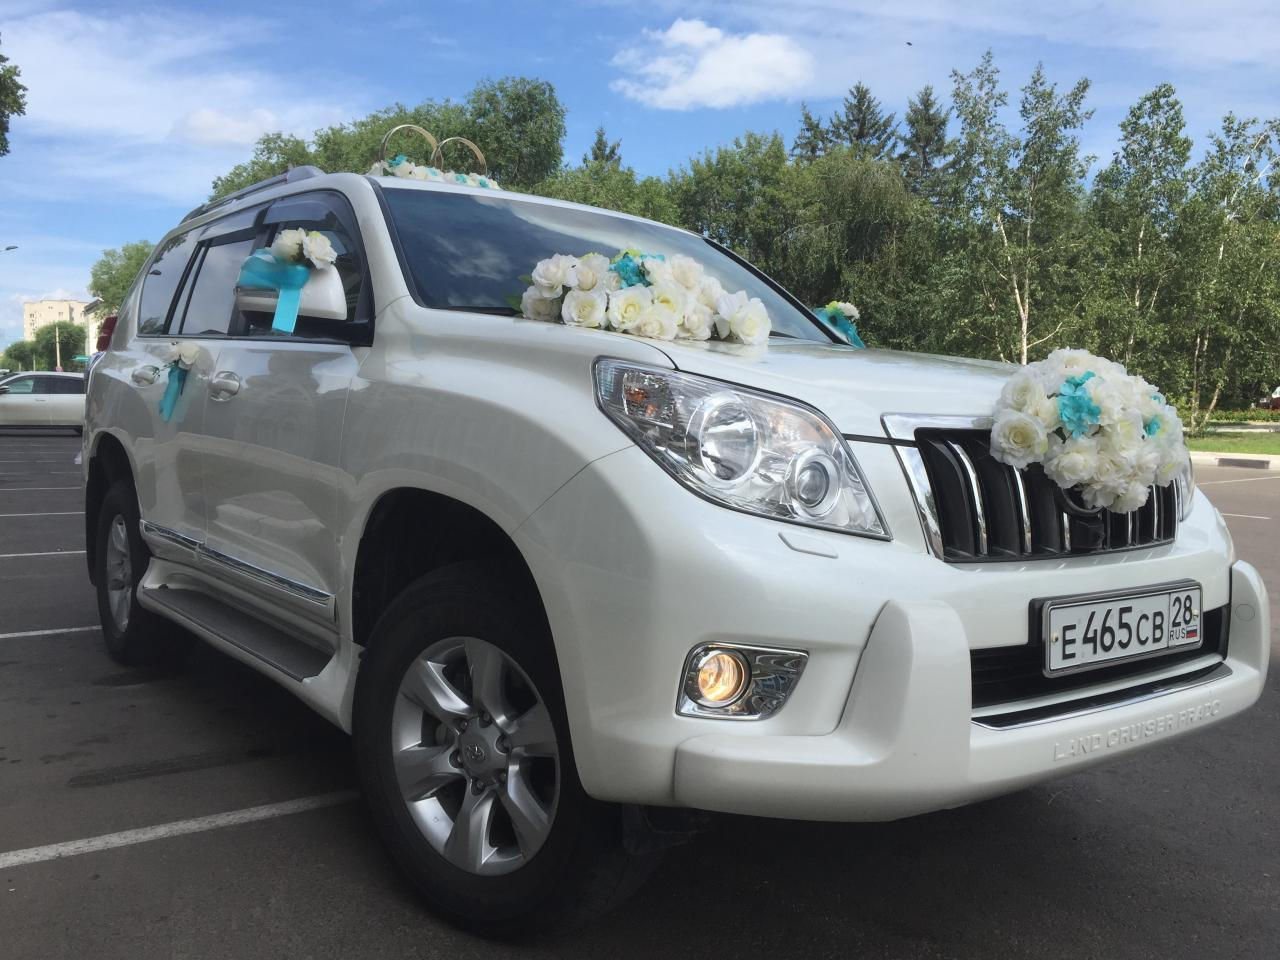 Внедорожник Toyota Land Cruiser Prado - фото 6